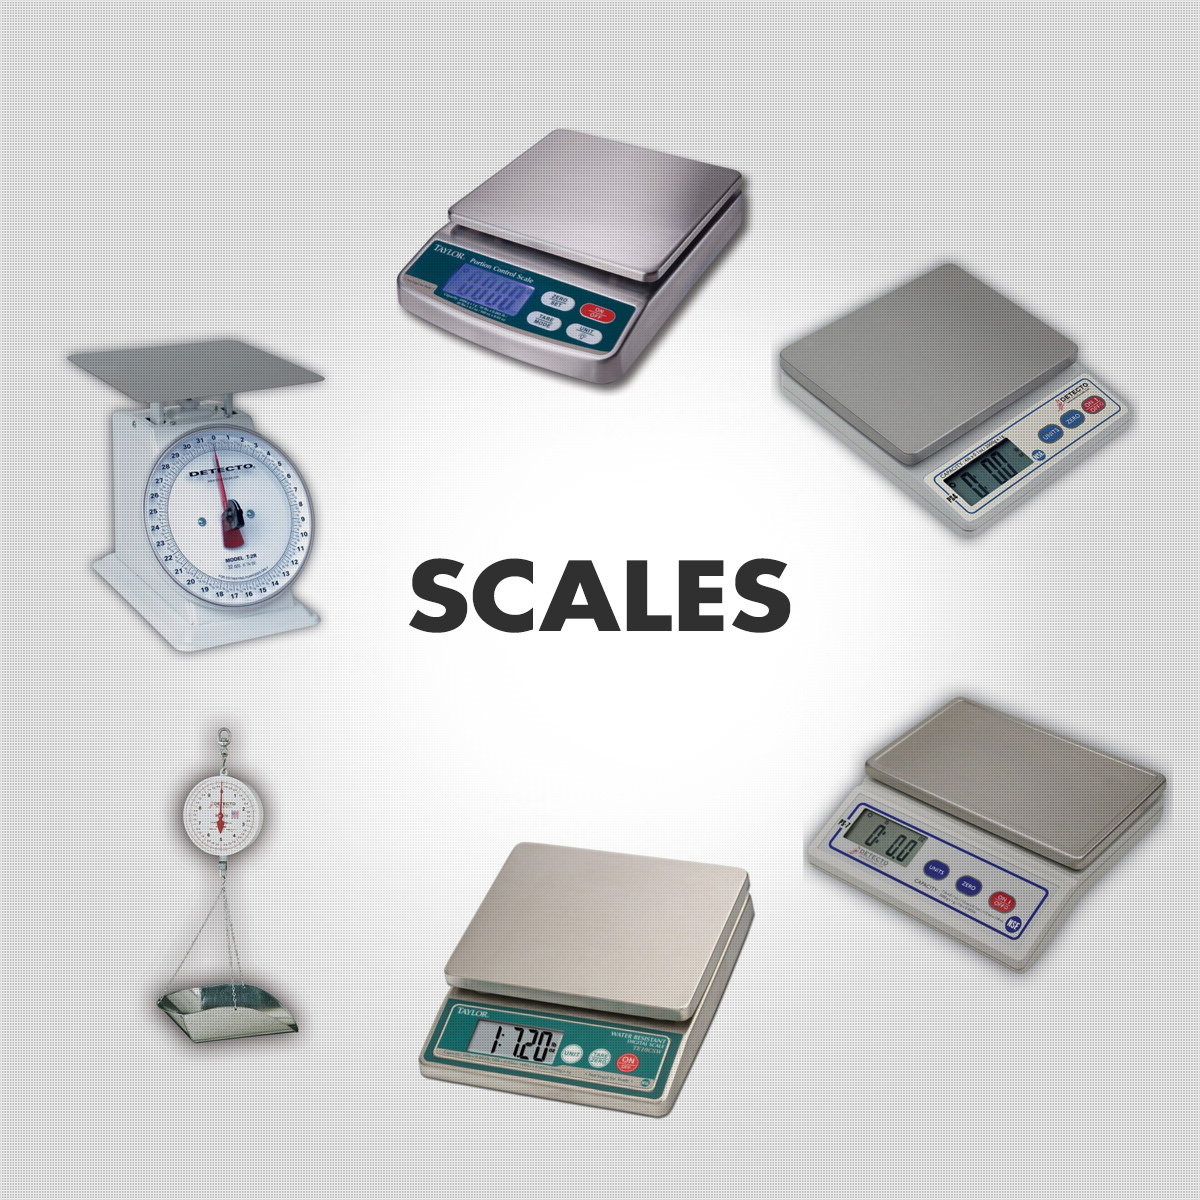 Scales - Digital, Dial, Scoop, Waterproof